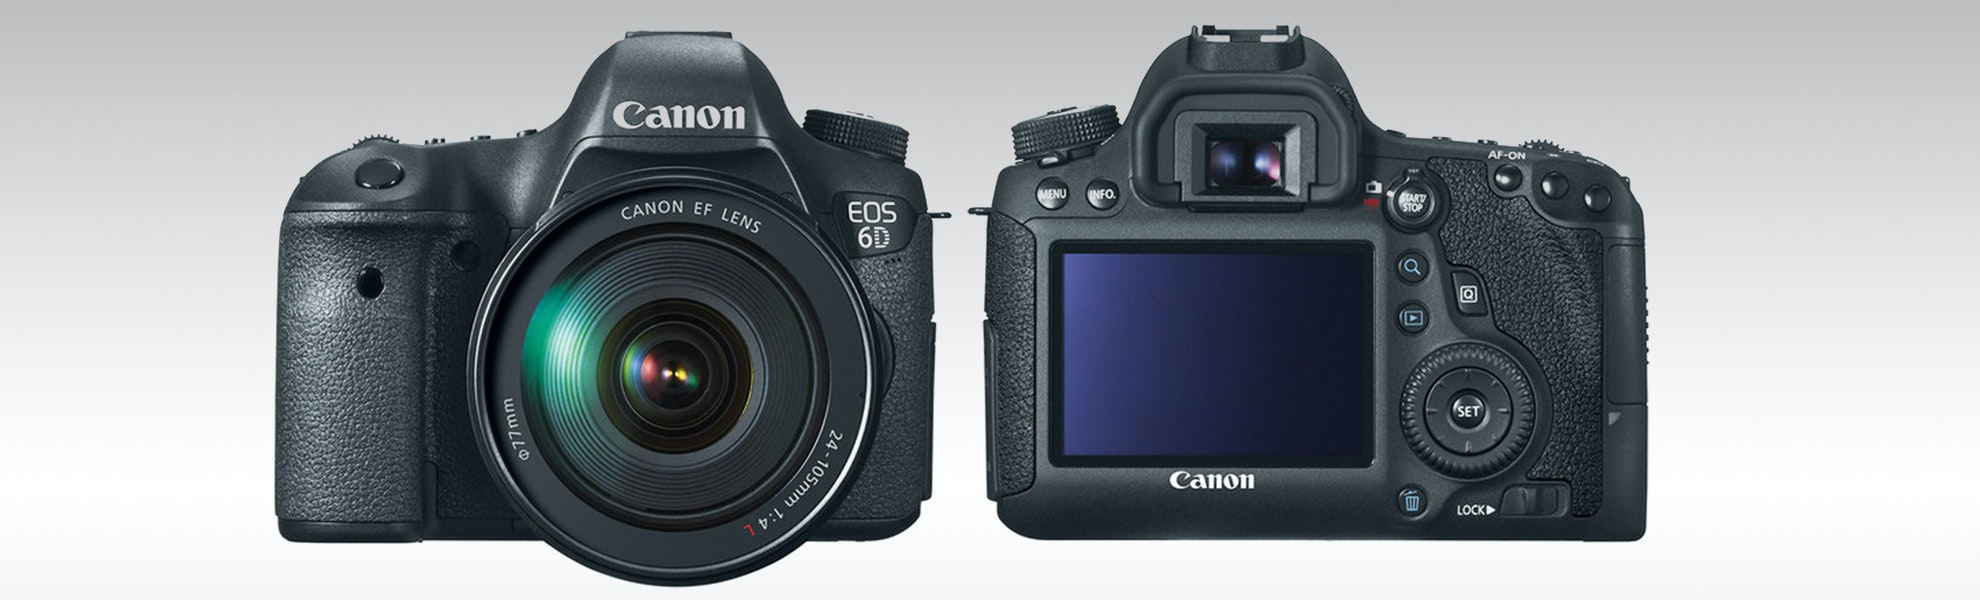 Canon 6D with 24-105mm f/4L Lens